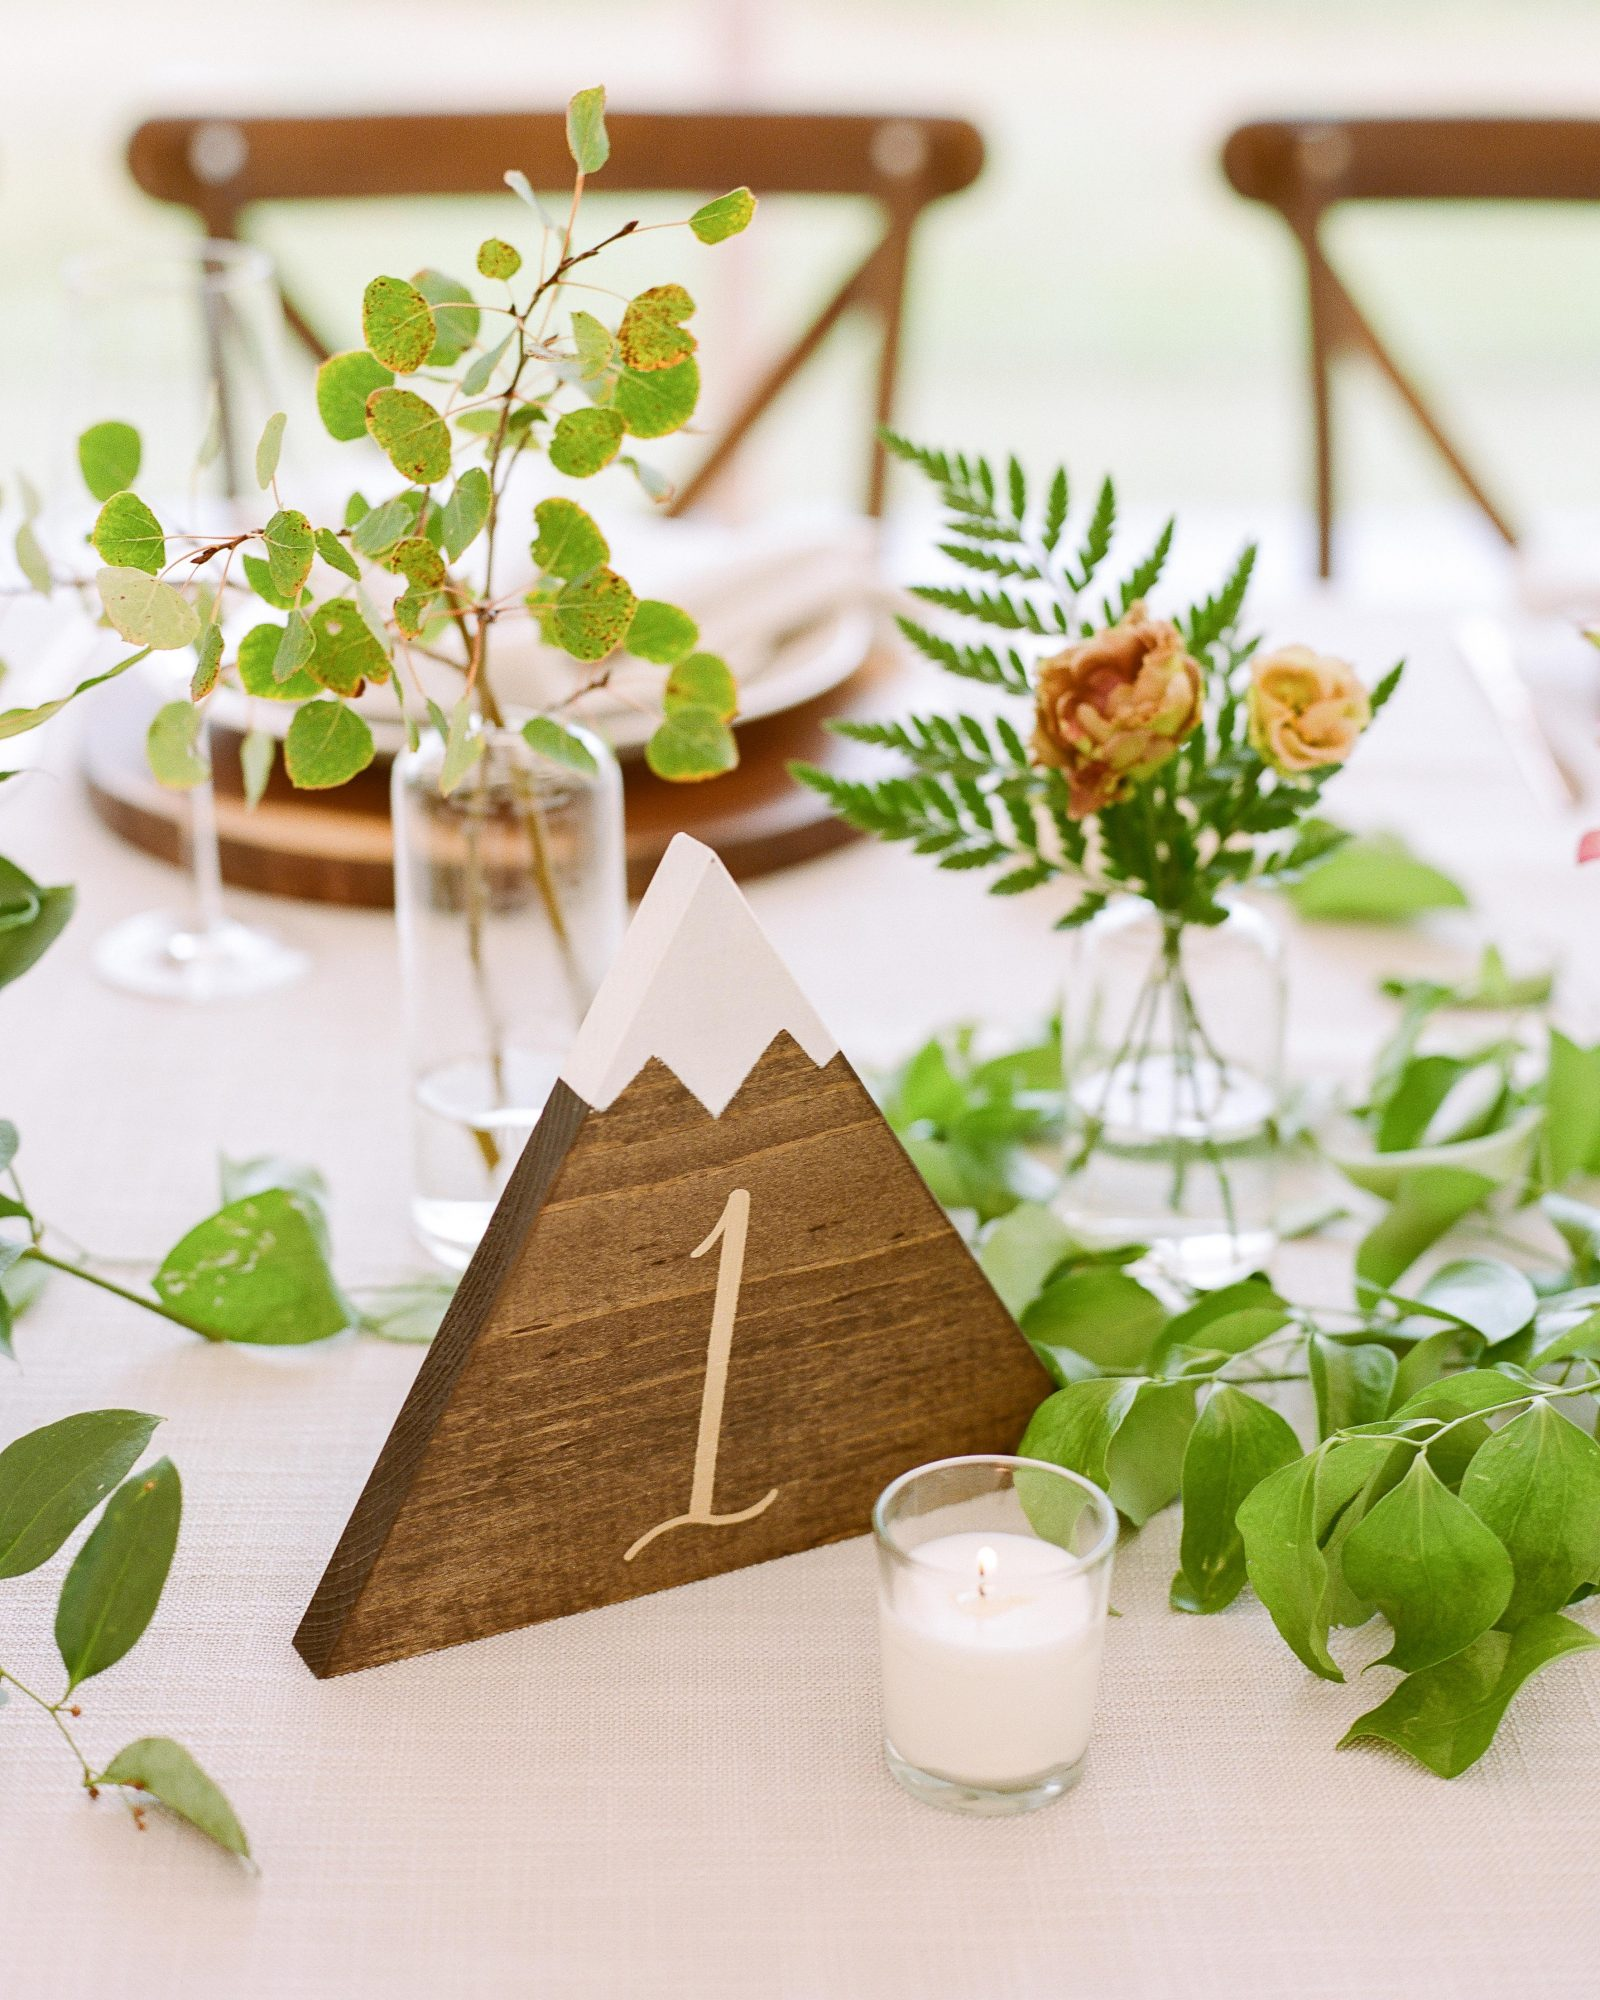 jill phil wedding wooden table number with mountain design surrounded by plant decor